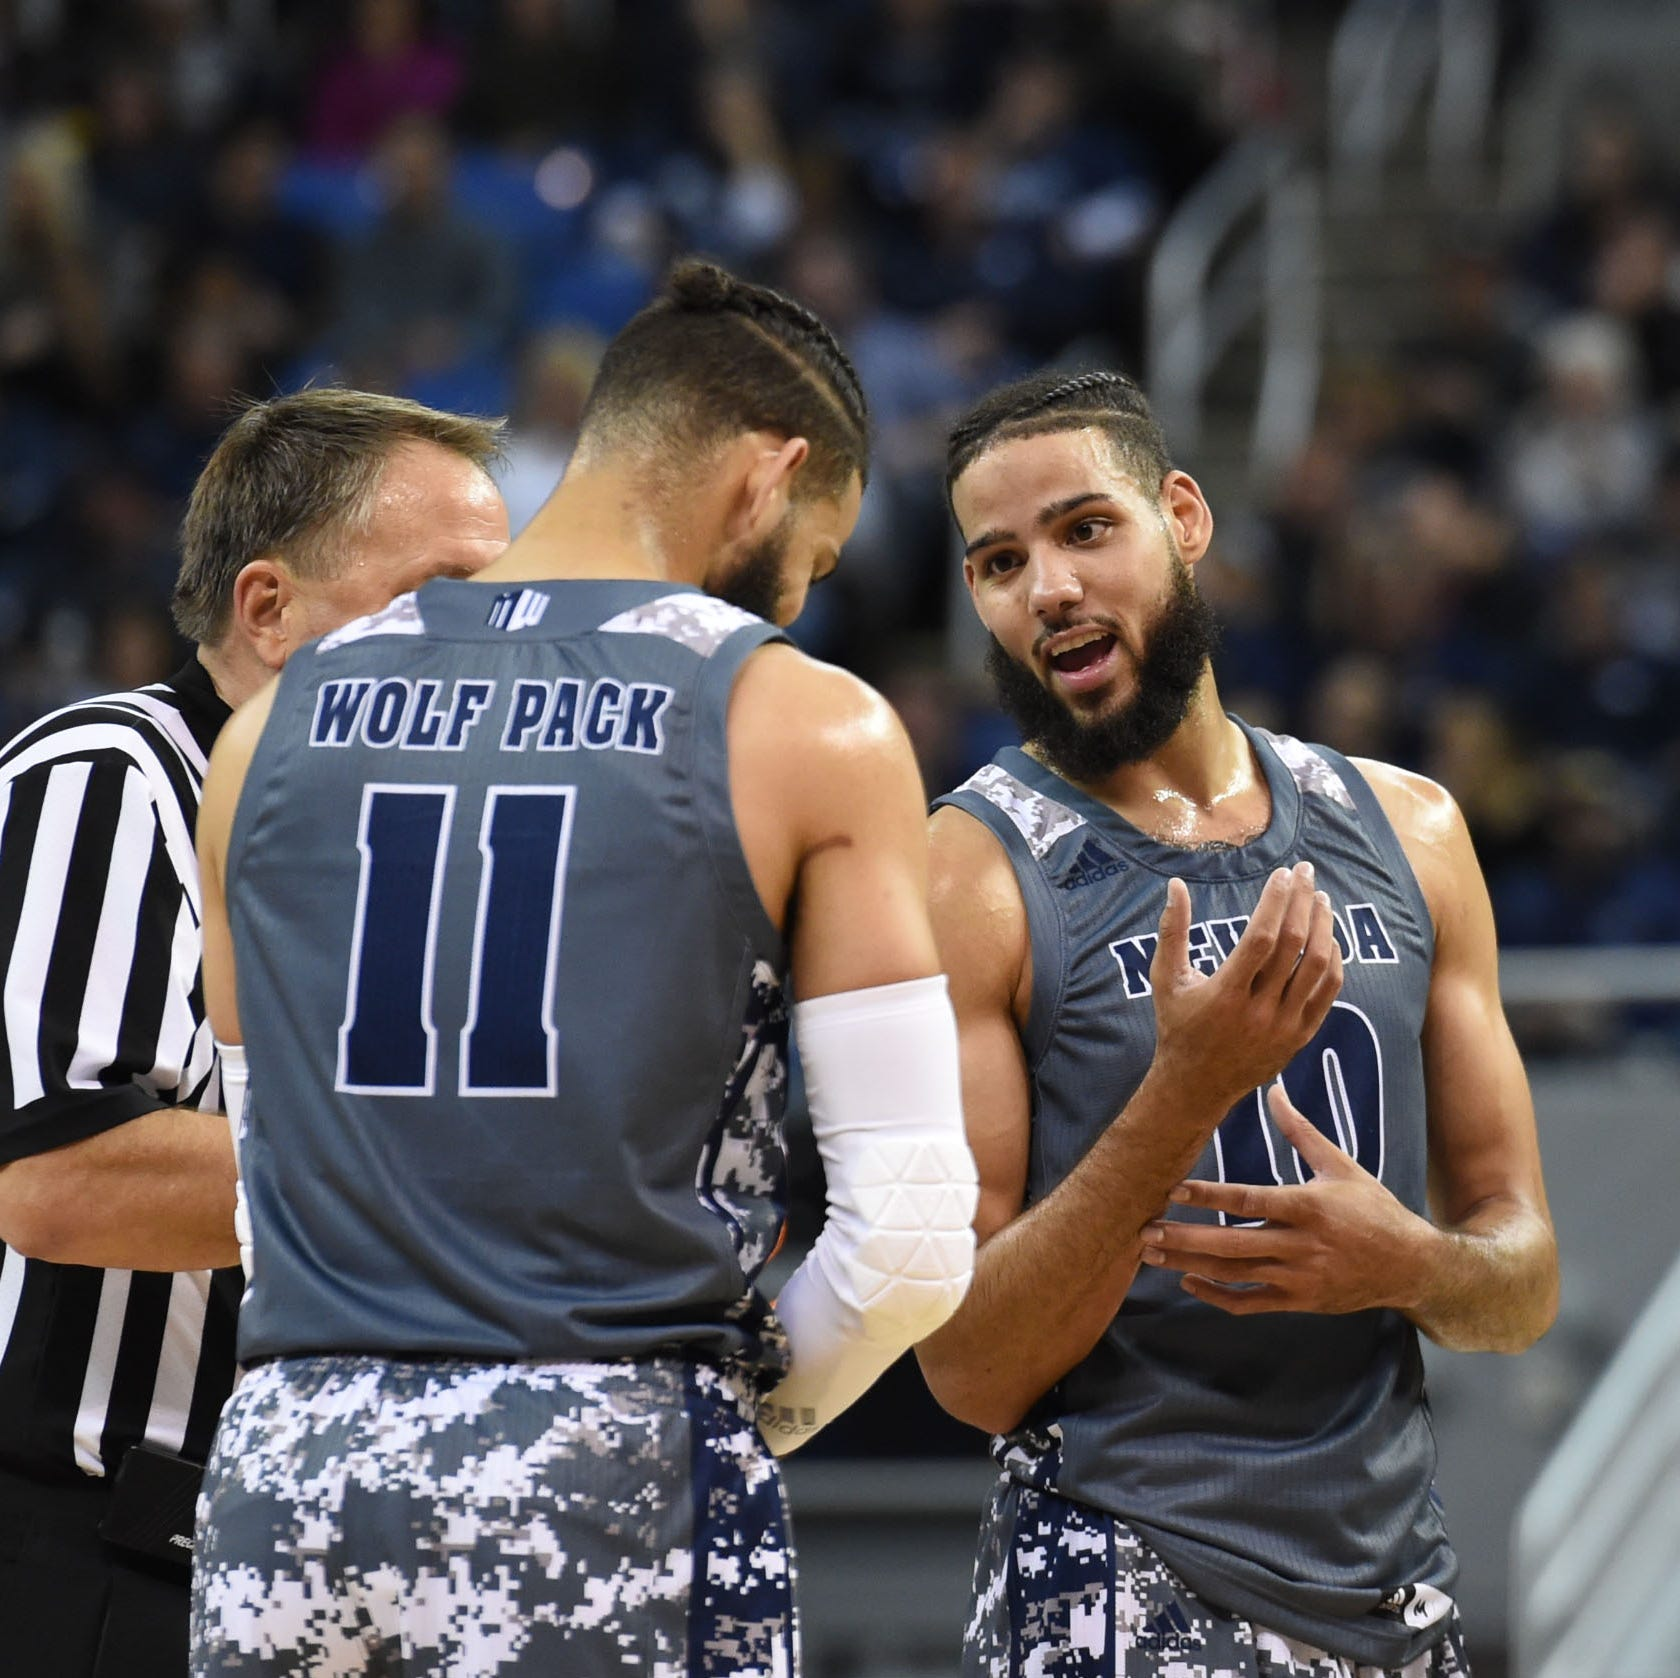 Little Rock at Nevada: What to watch for as Wolf Pack returns to action